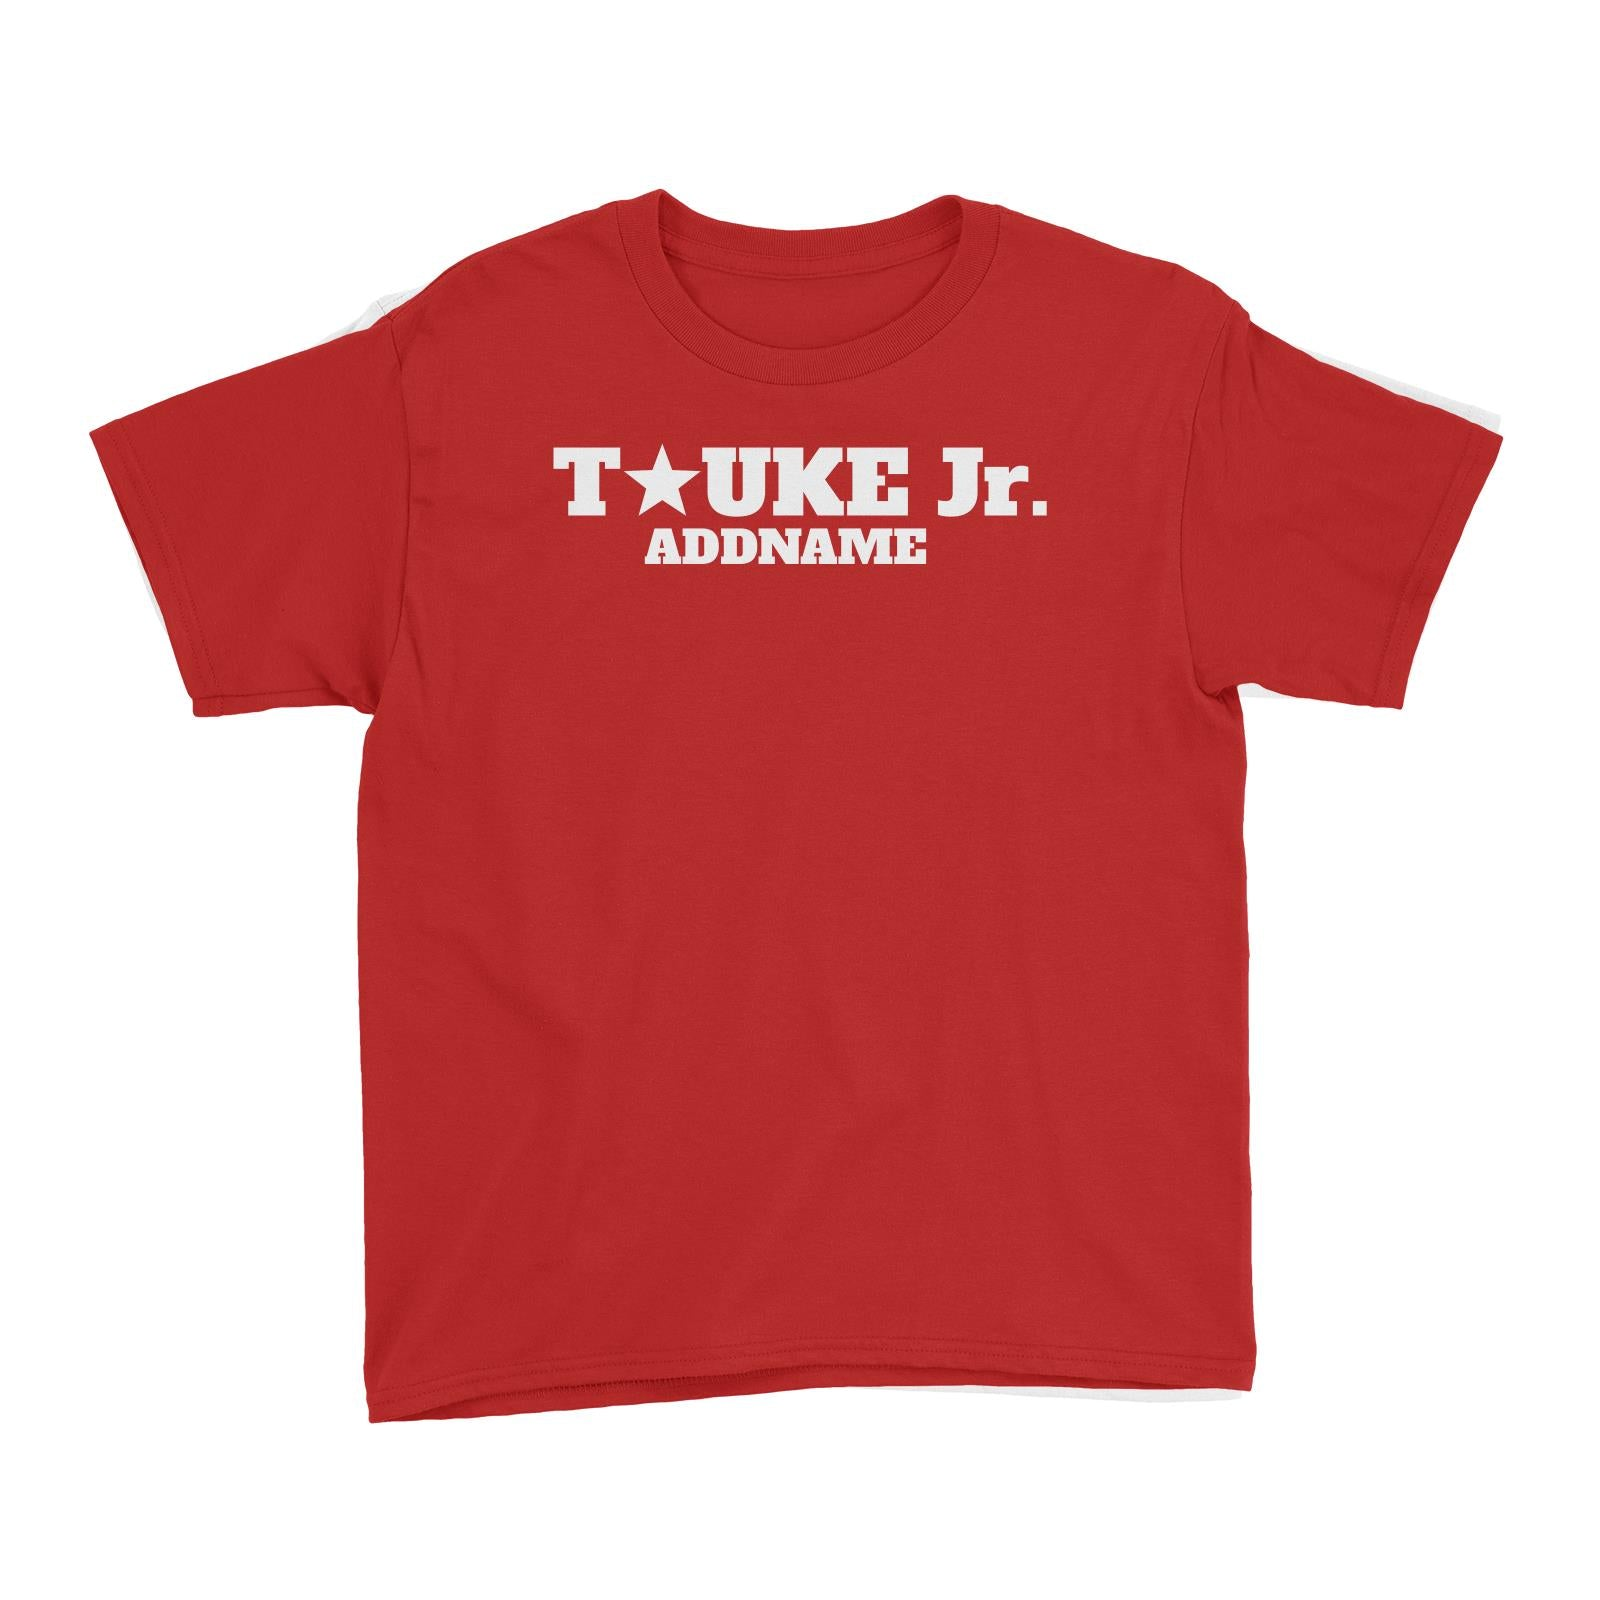 Tauke Jr Star Kid's T-Shirt